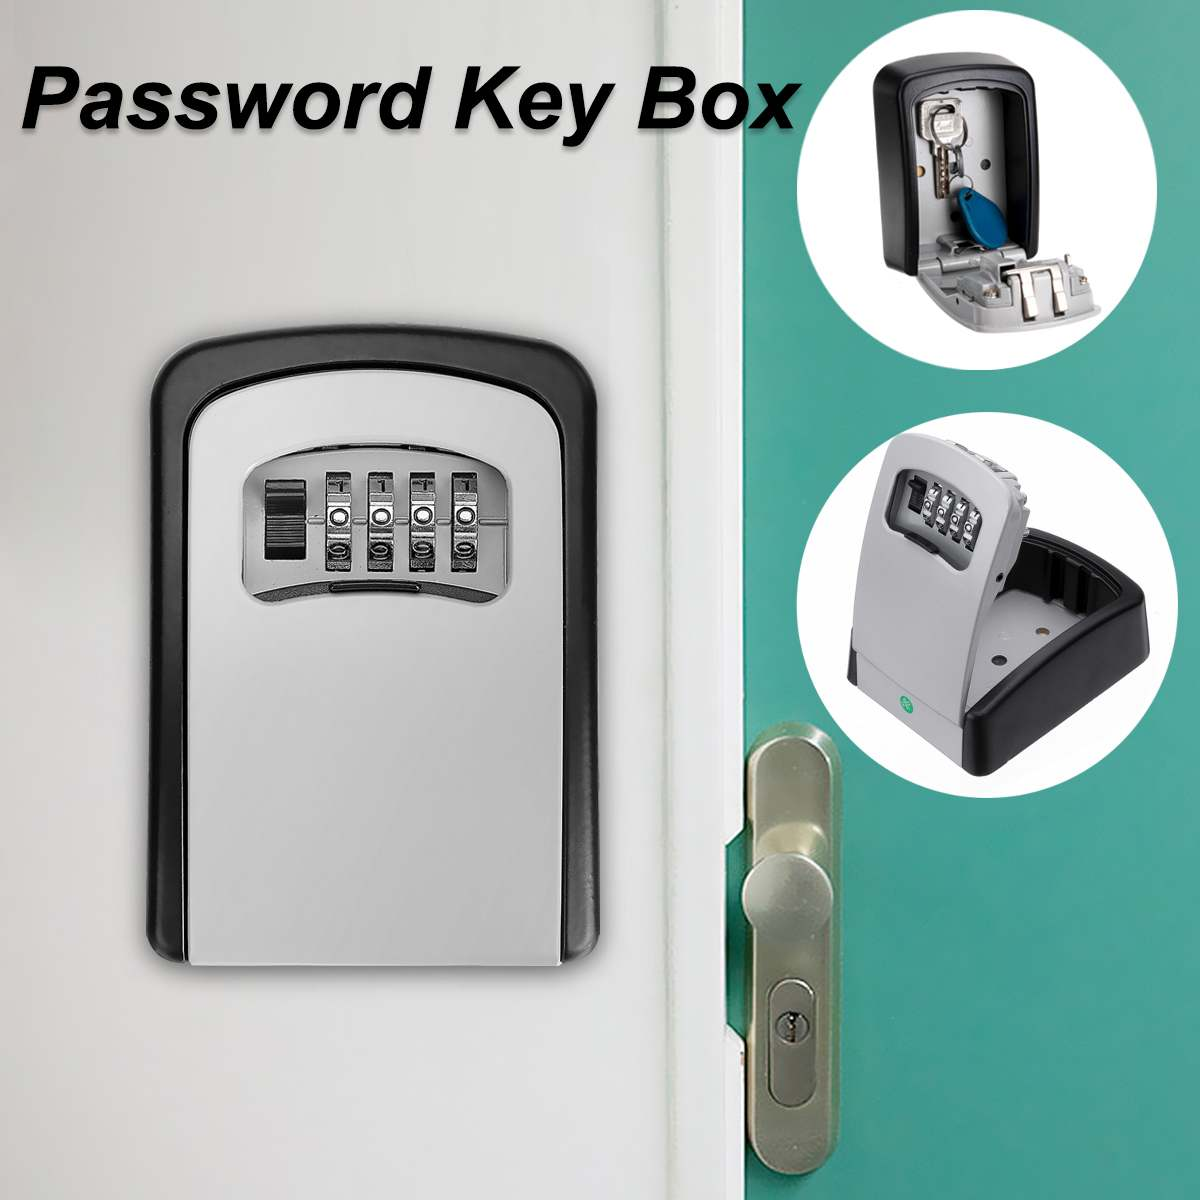 4 Digit Wall-mounted Curved Key Card Password Box Master Key Box Password Lock Decorated Cipher Key Box